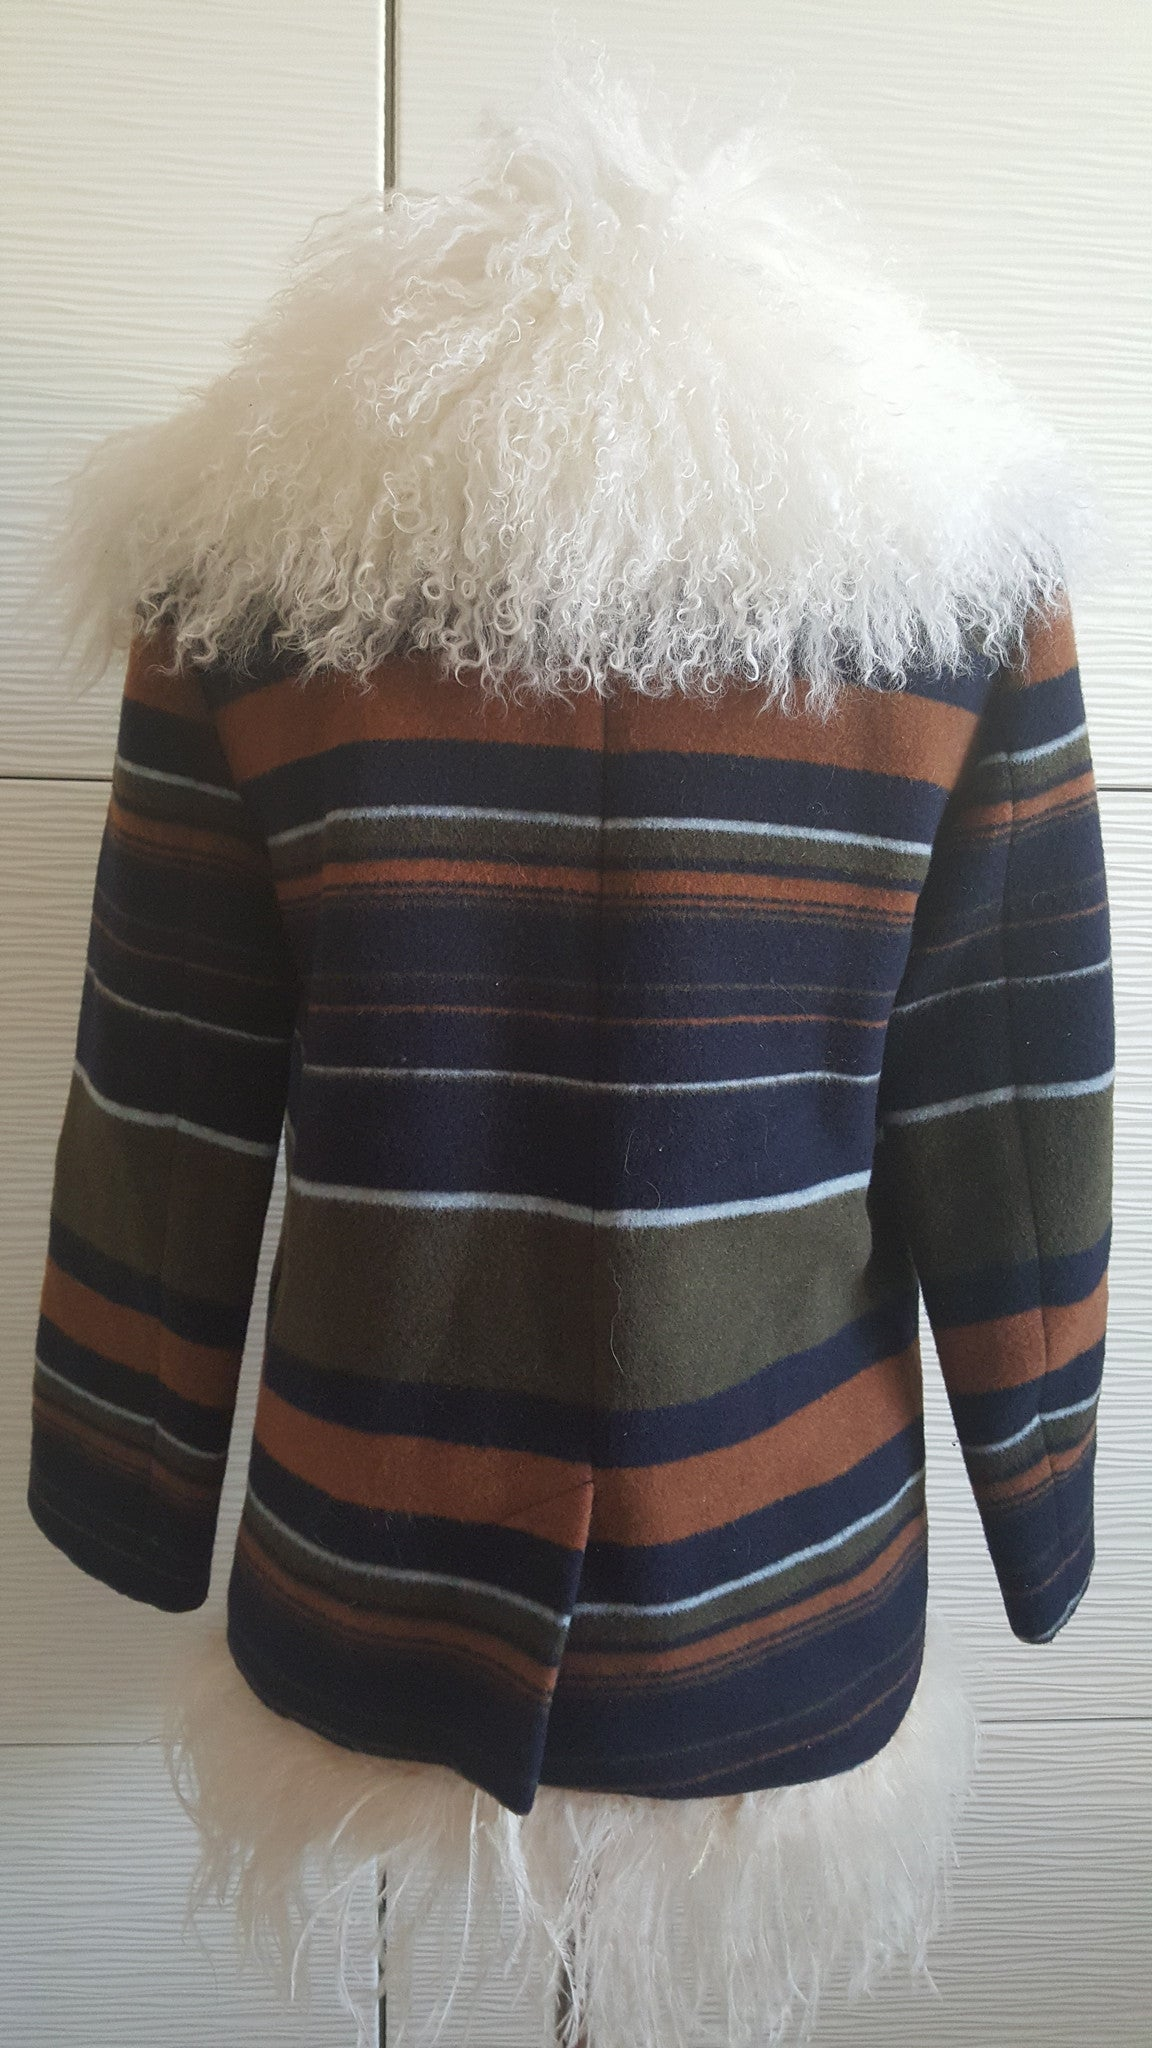 SKAIST TAYLOR WOOL JACKET WITH FUR COLLAR -  SIZE SMALL